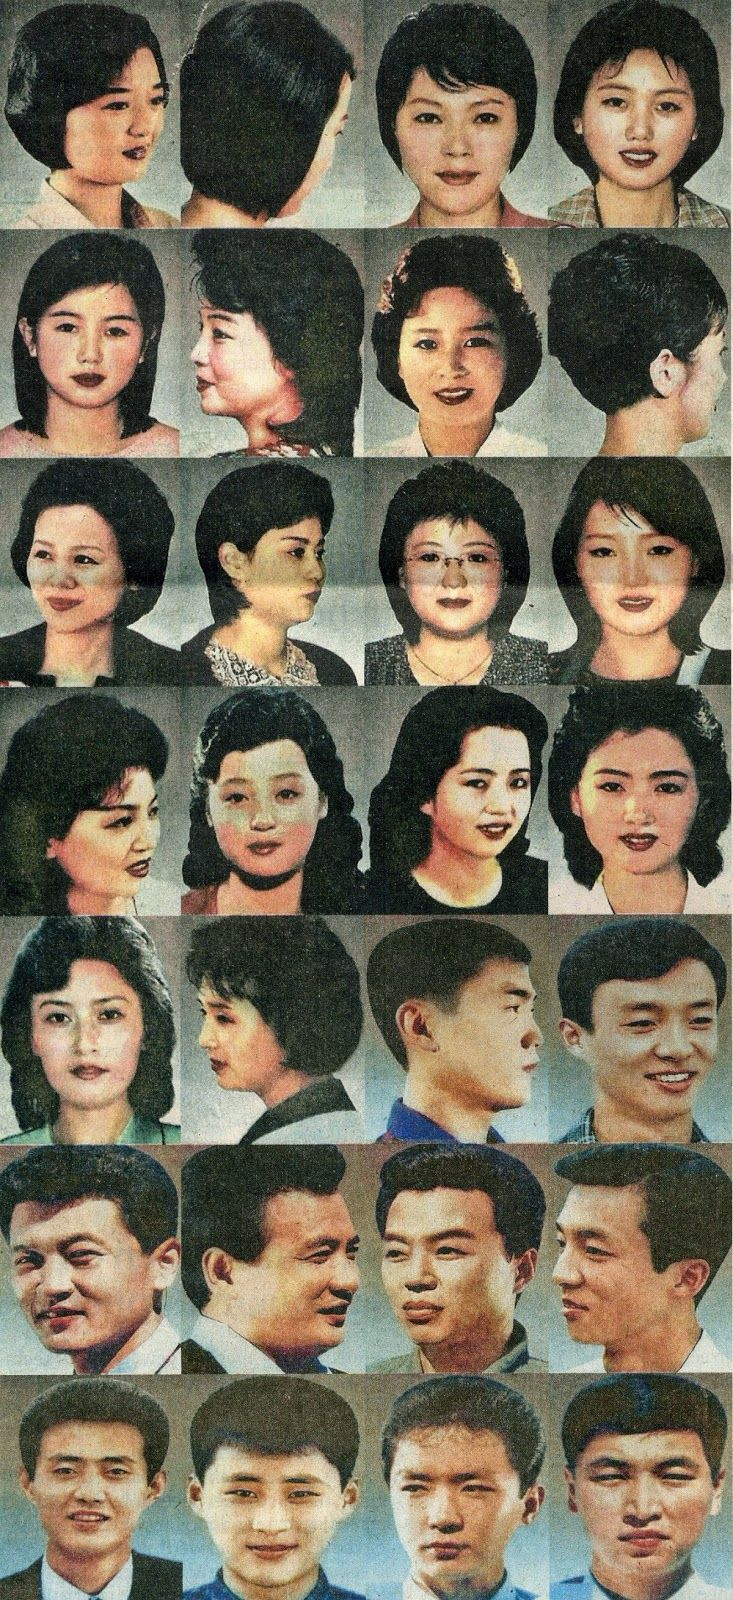 North Korea state approved hairstyles...this is plain out crazy...even the style of hair is law enforced